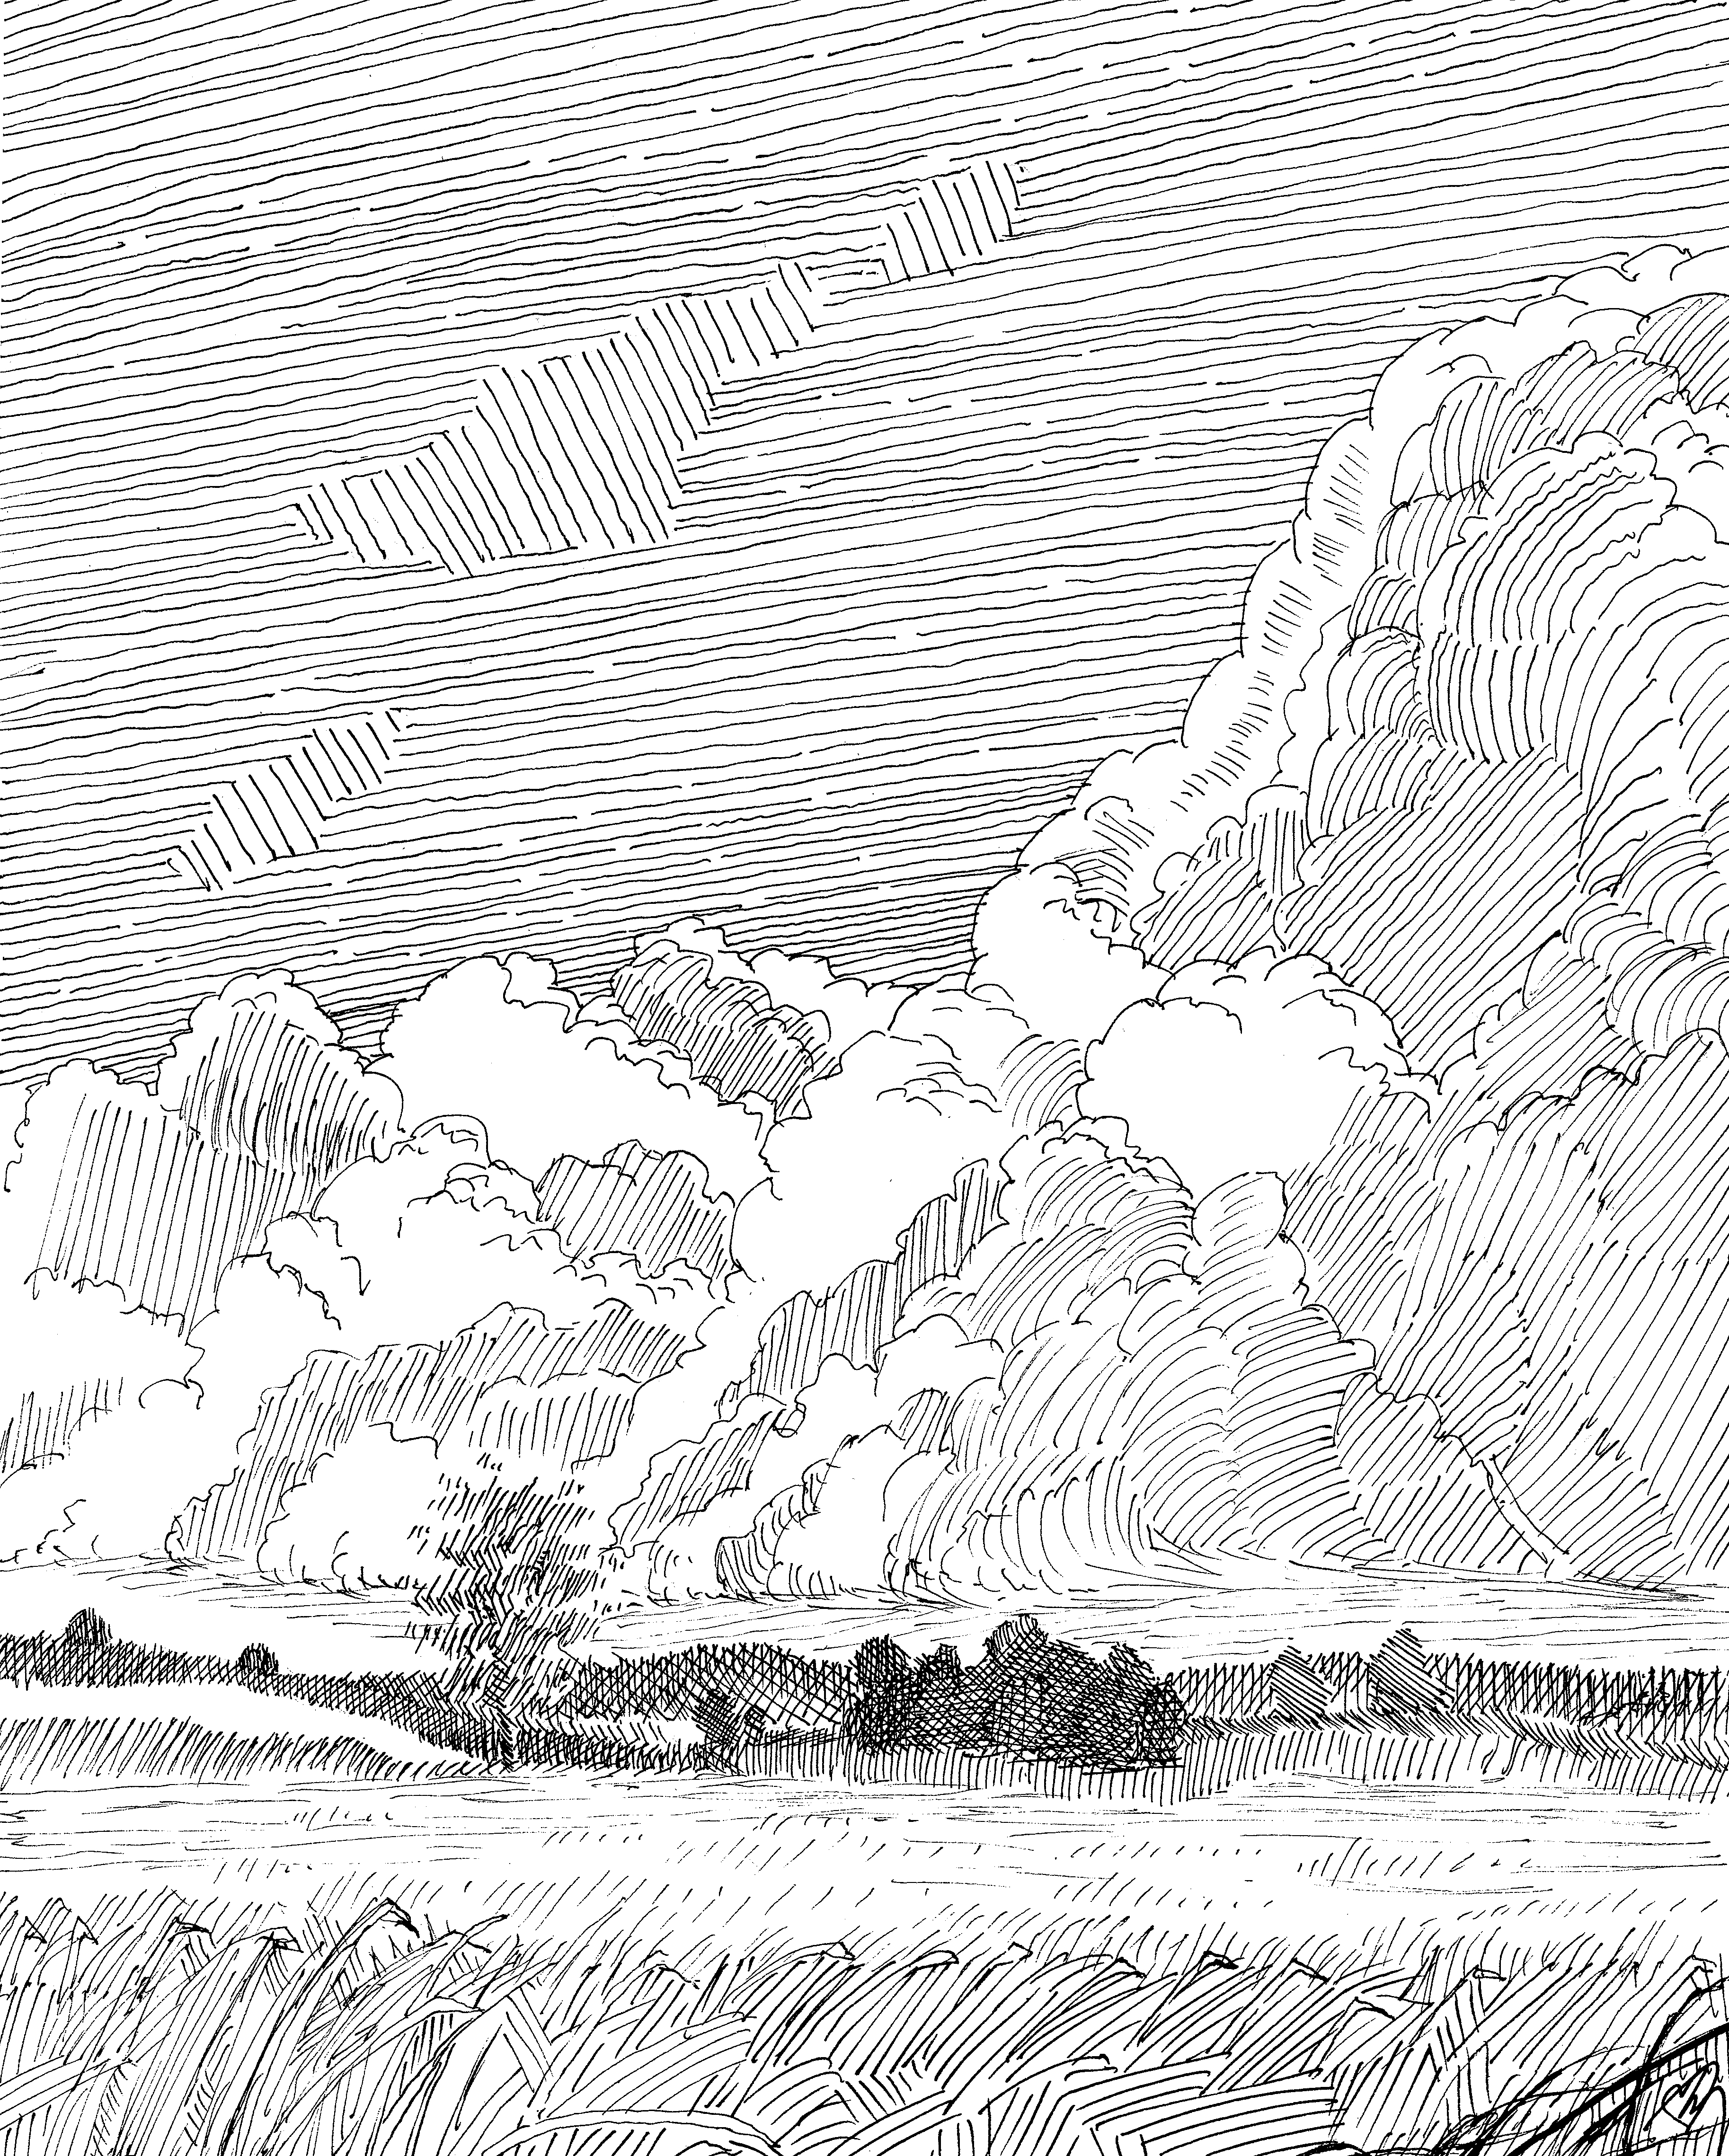 Ink Drawing of Clouds